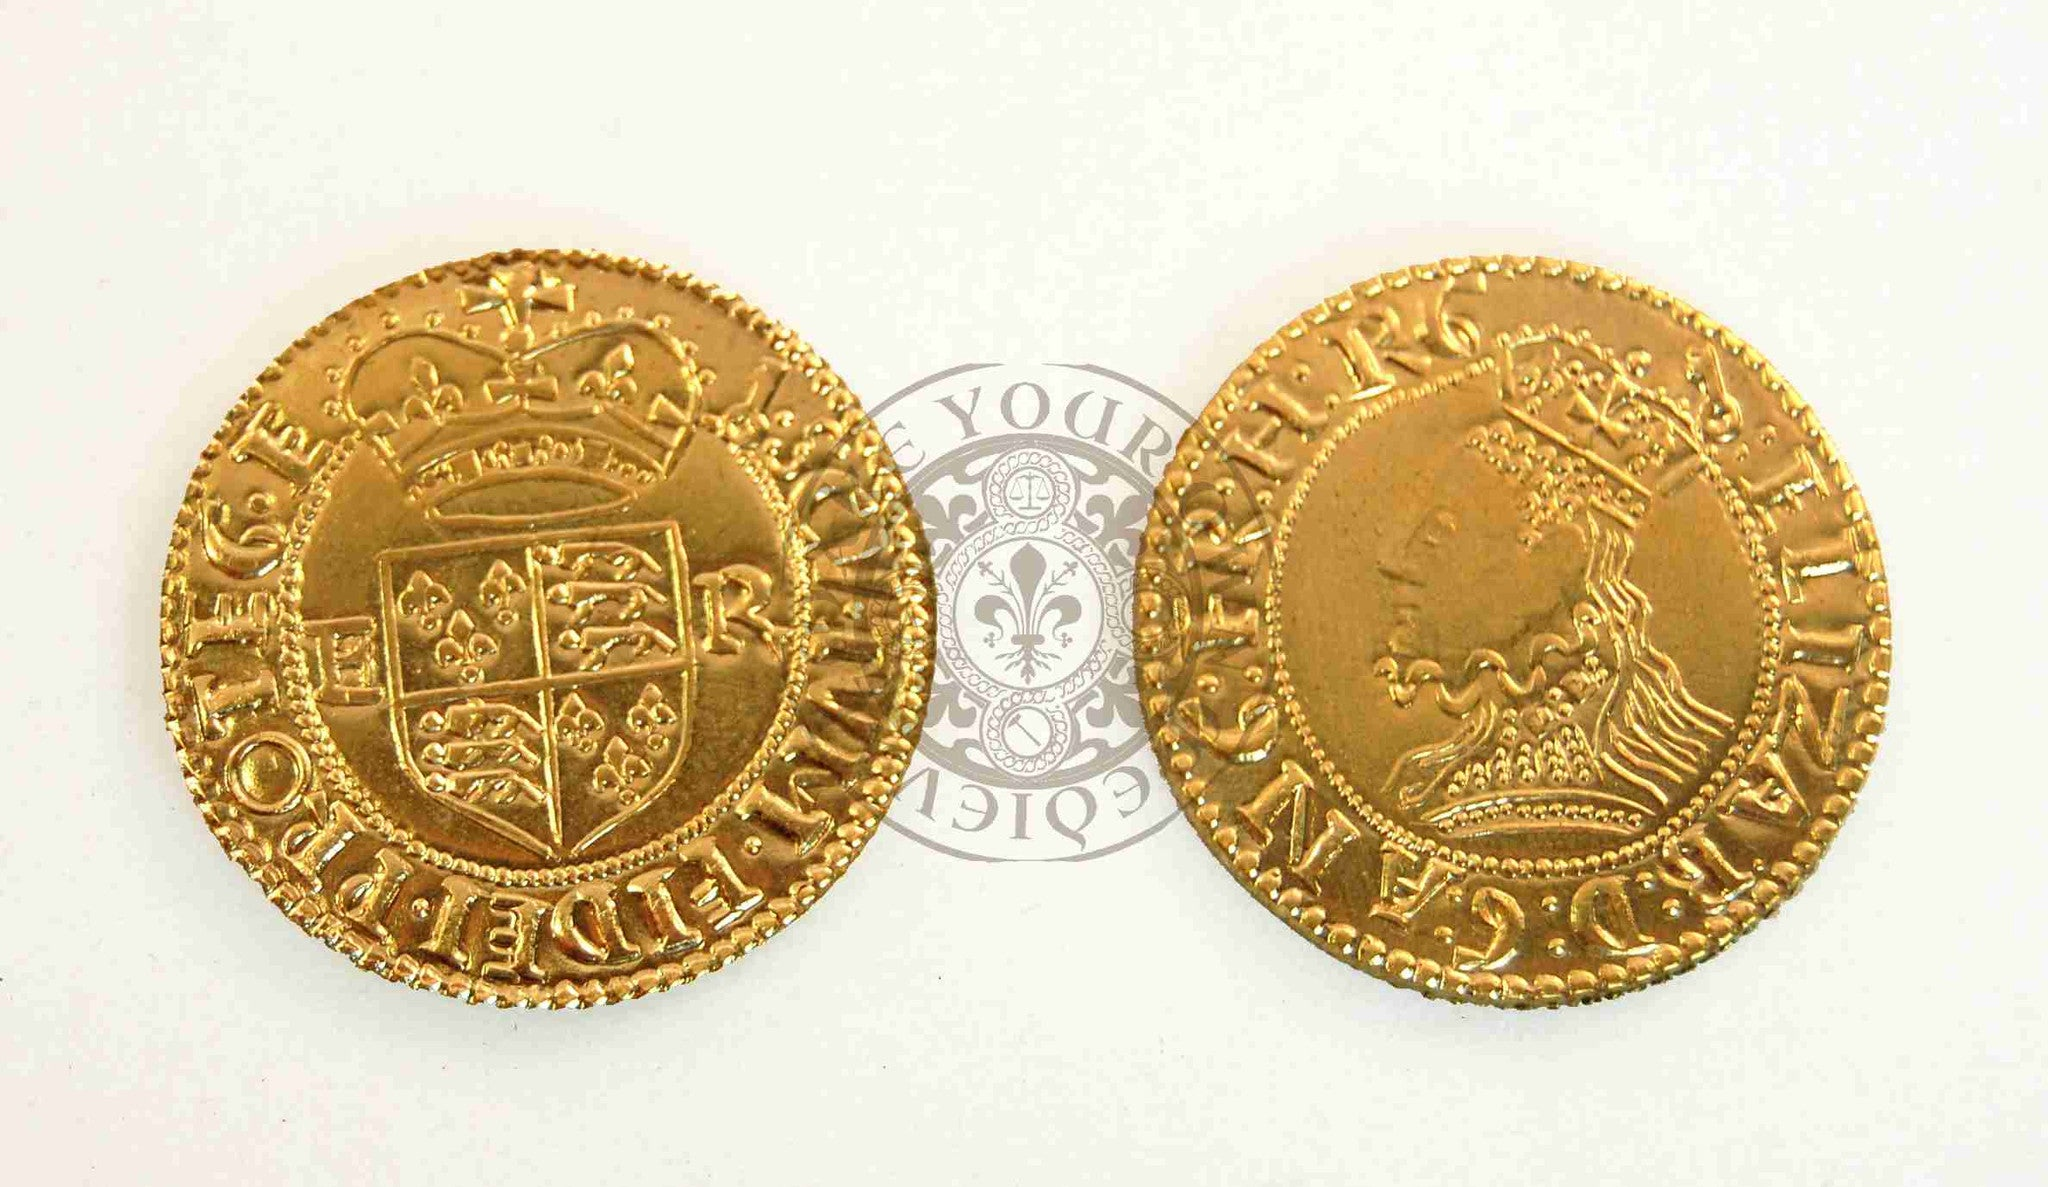 Tudor half crown coin minted by Elizabeth 1st reproduction